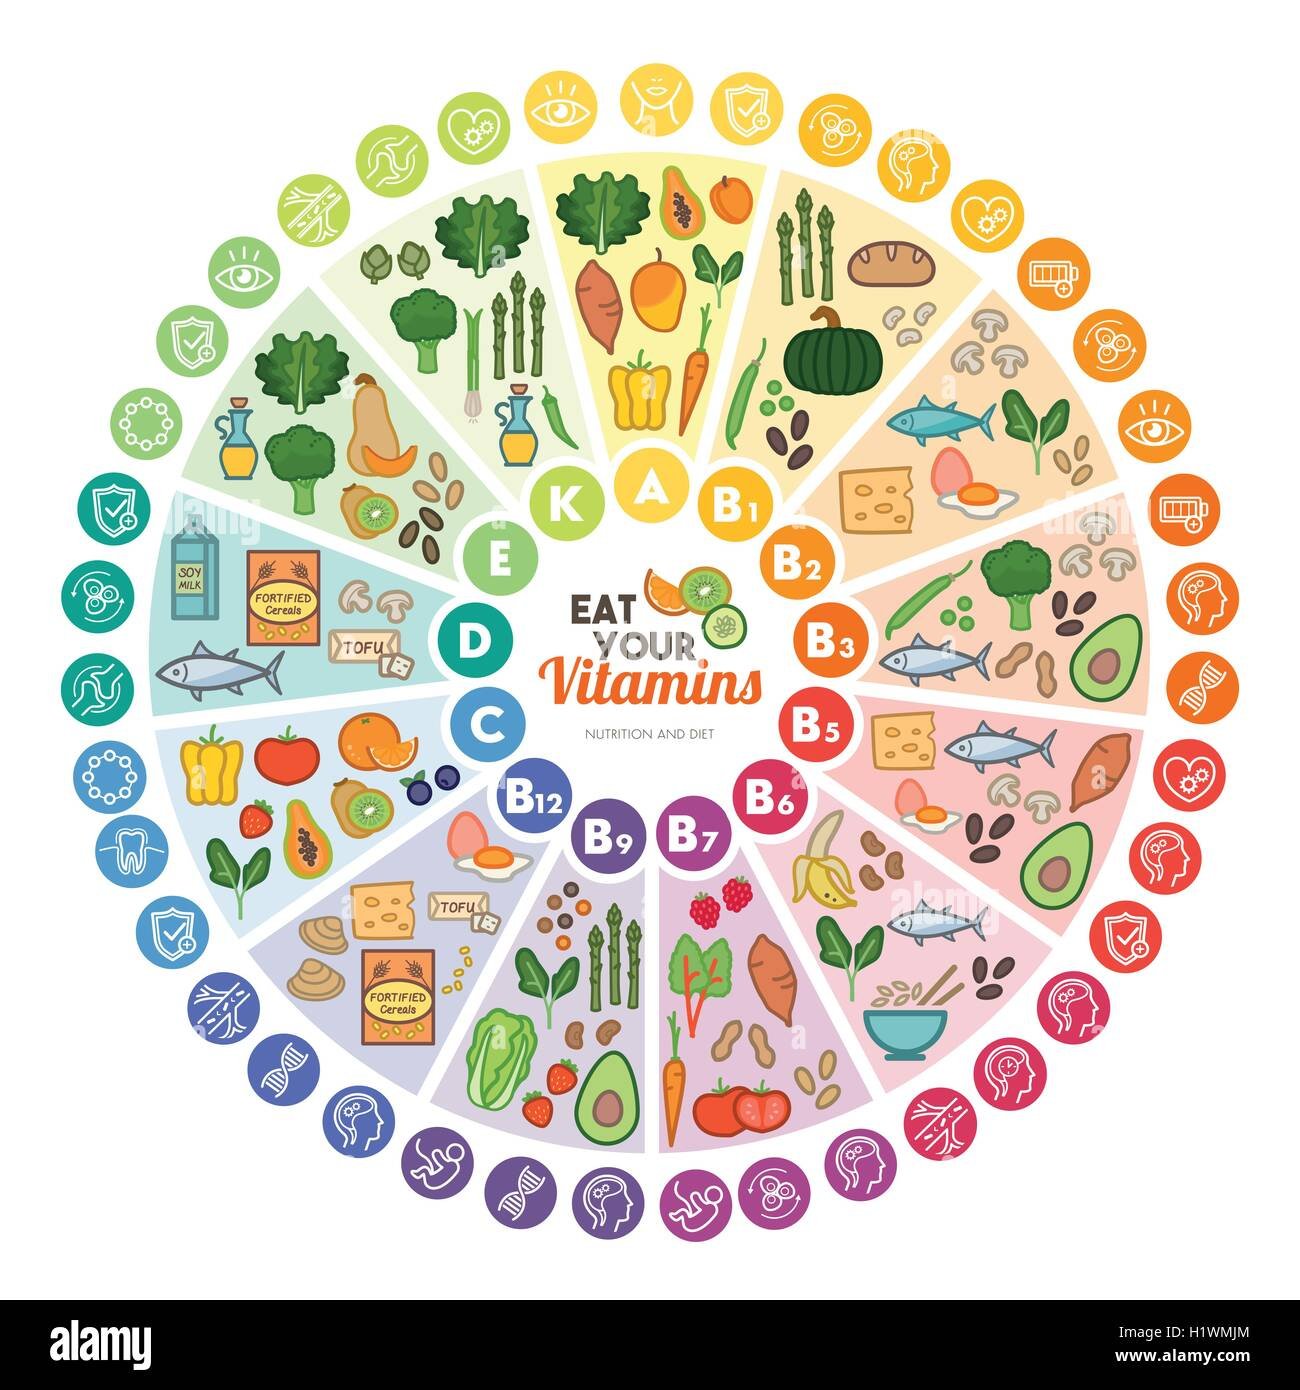 Vitamin food sources and functions, rainbow wheel chart with food icons, healthy eating and healthcare concept - Stock Image